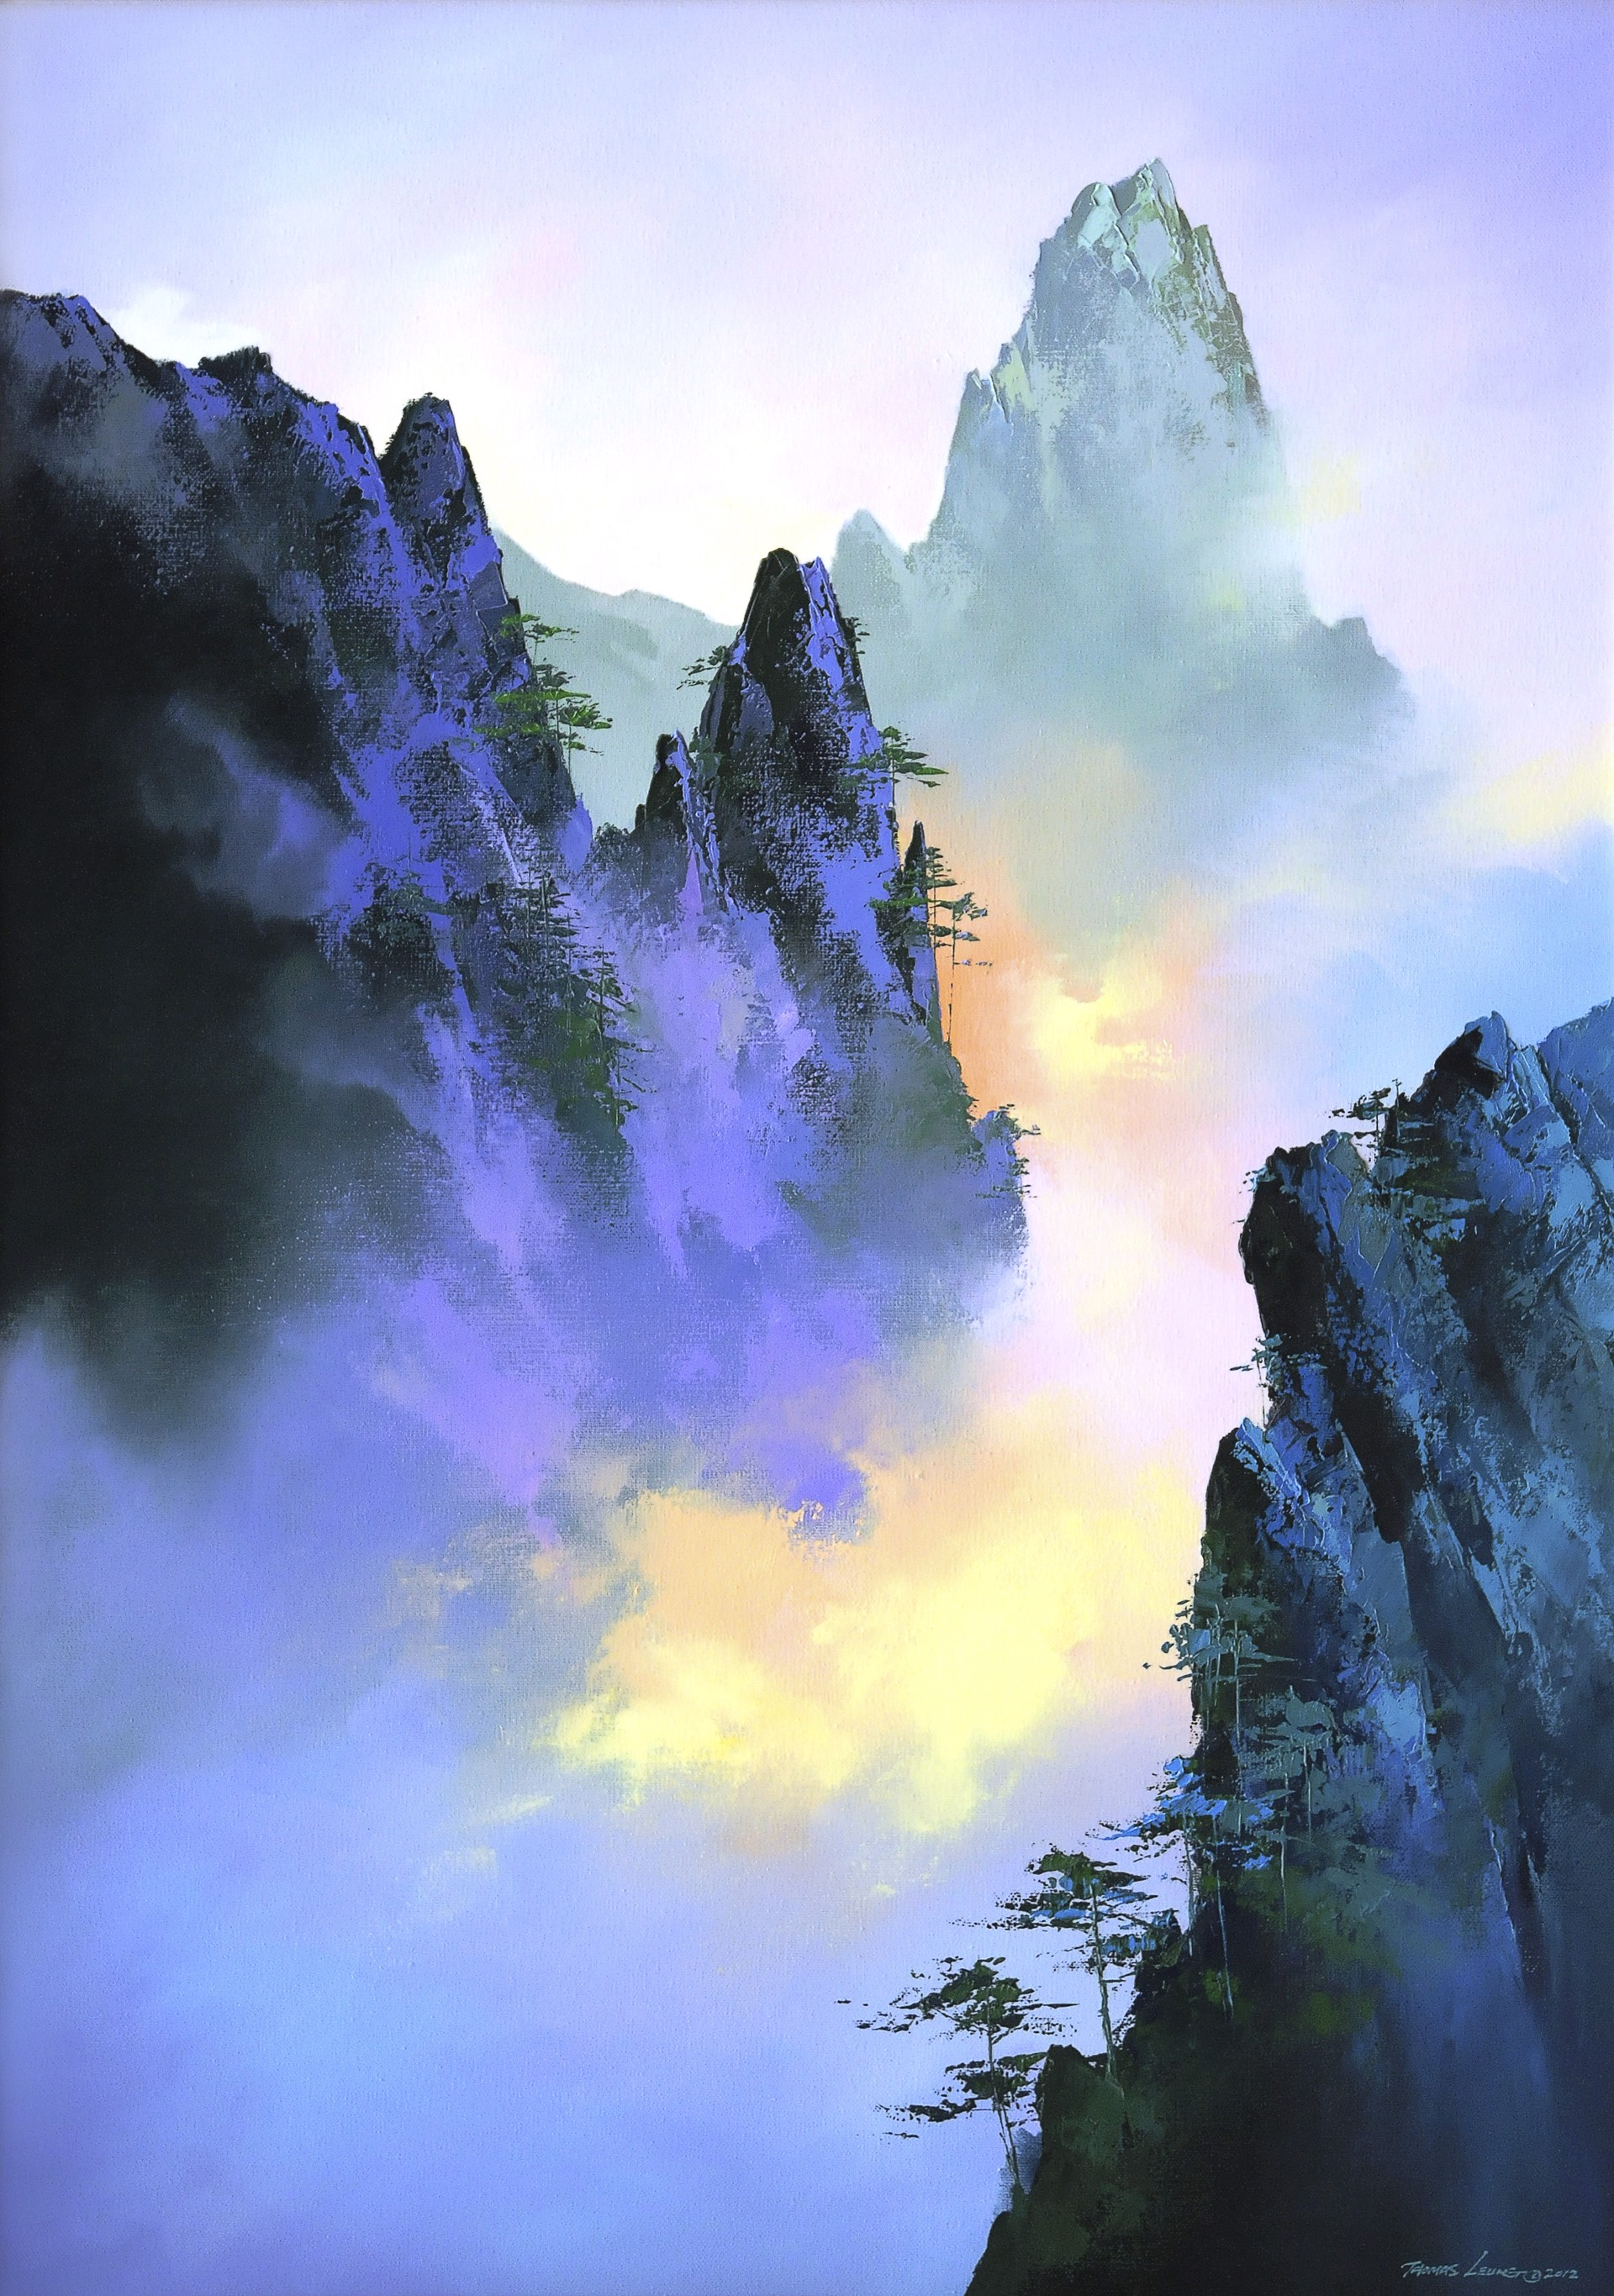 Sea Of Clouds by Thomas Leung